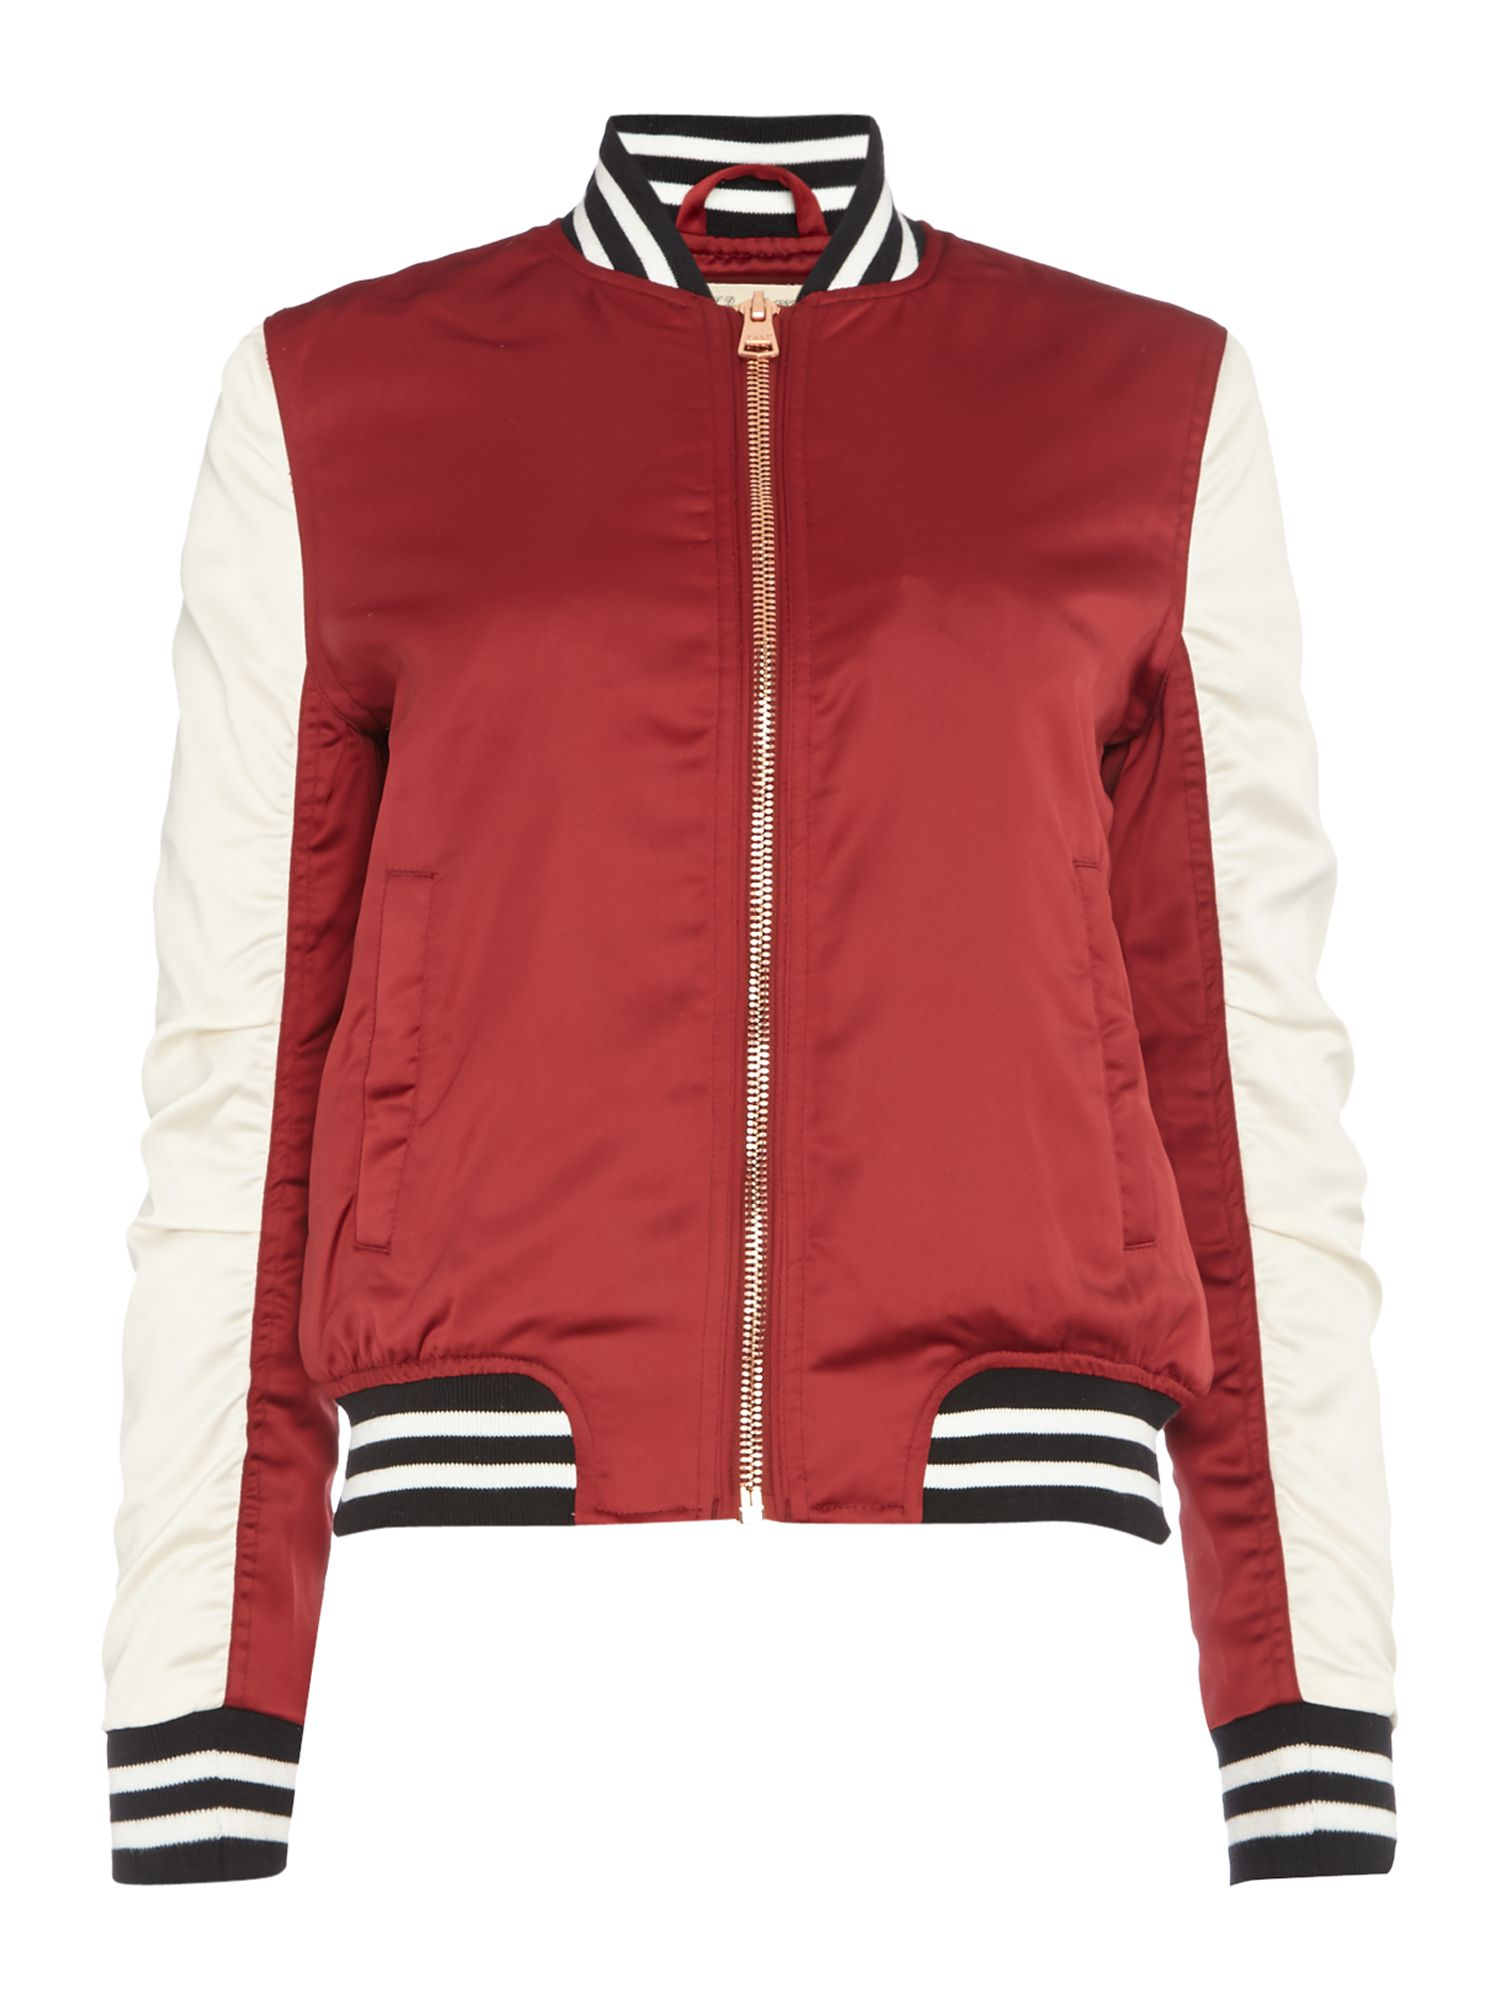 Lee Sateen Bomber Jacket In Biking Red, Red